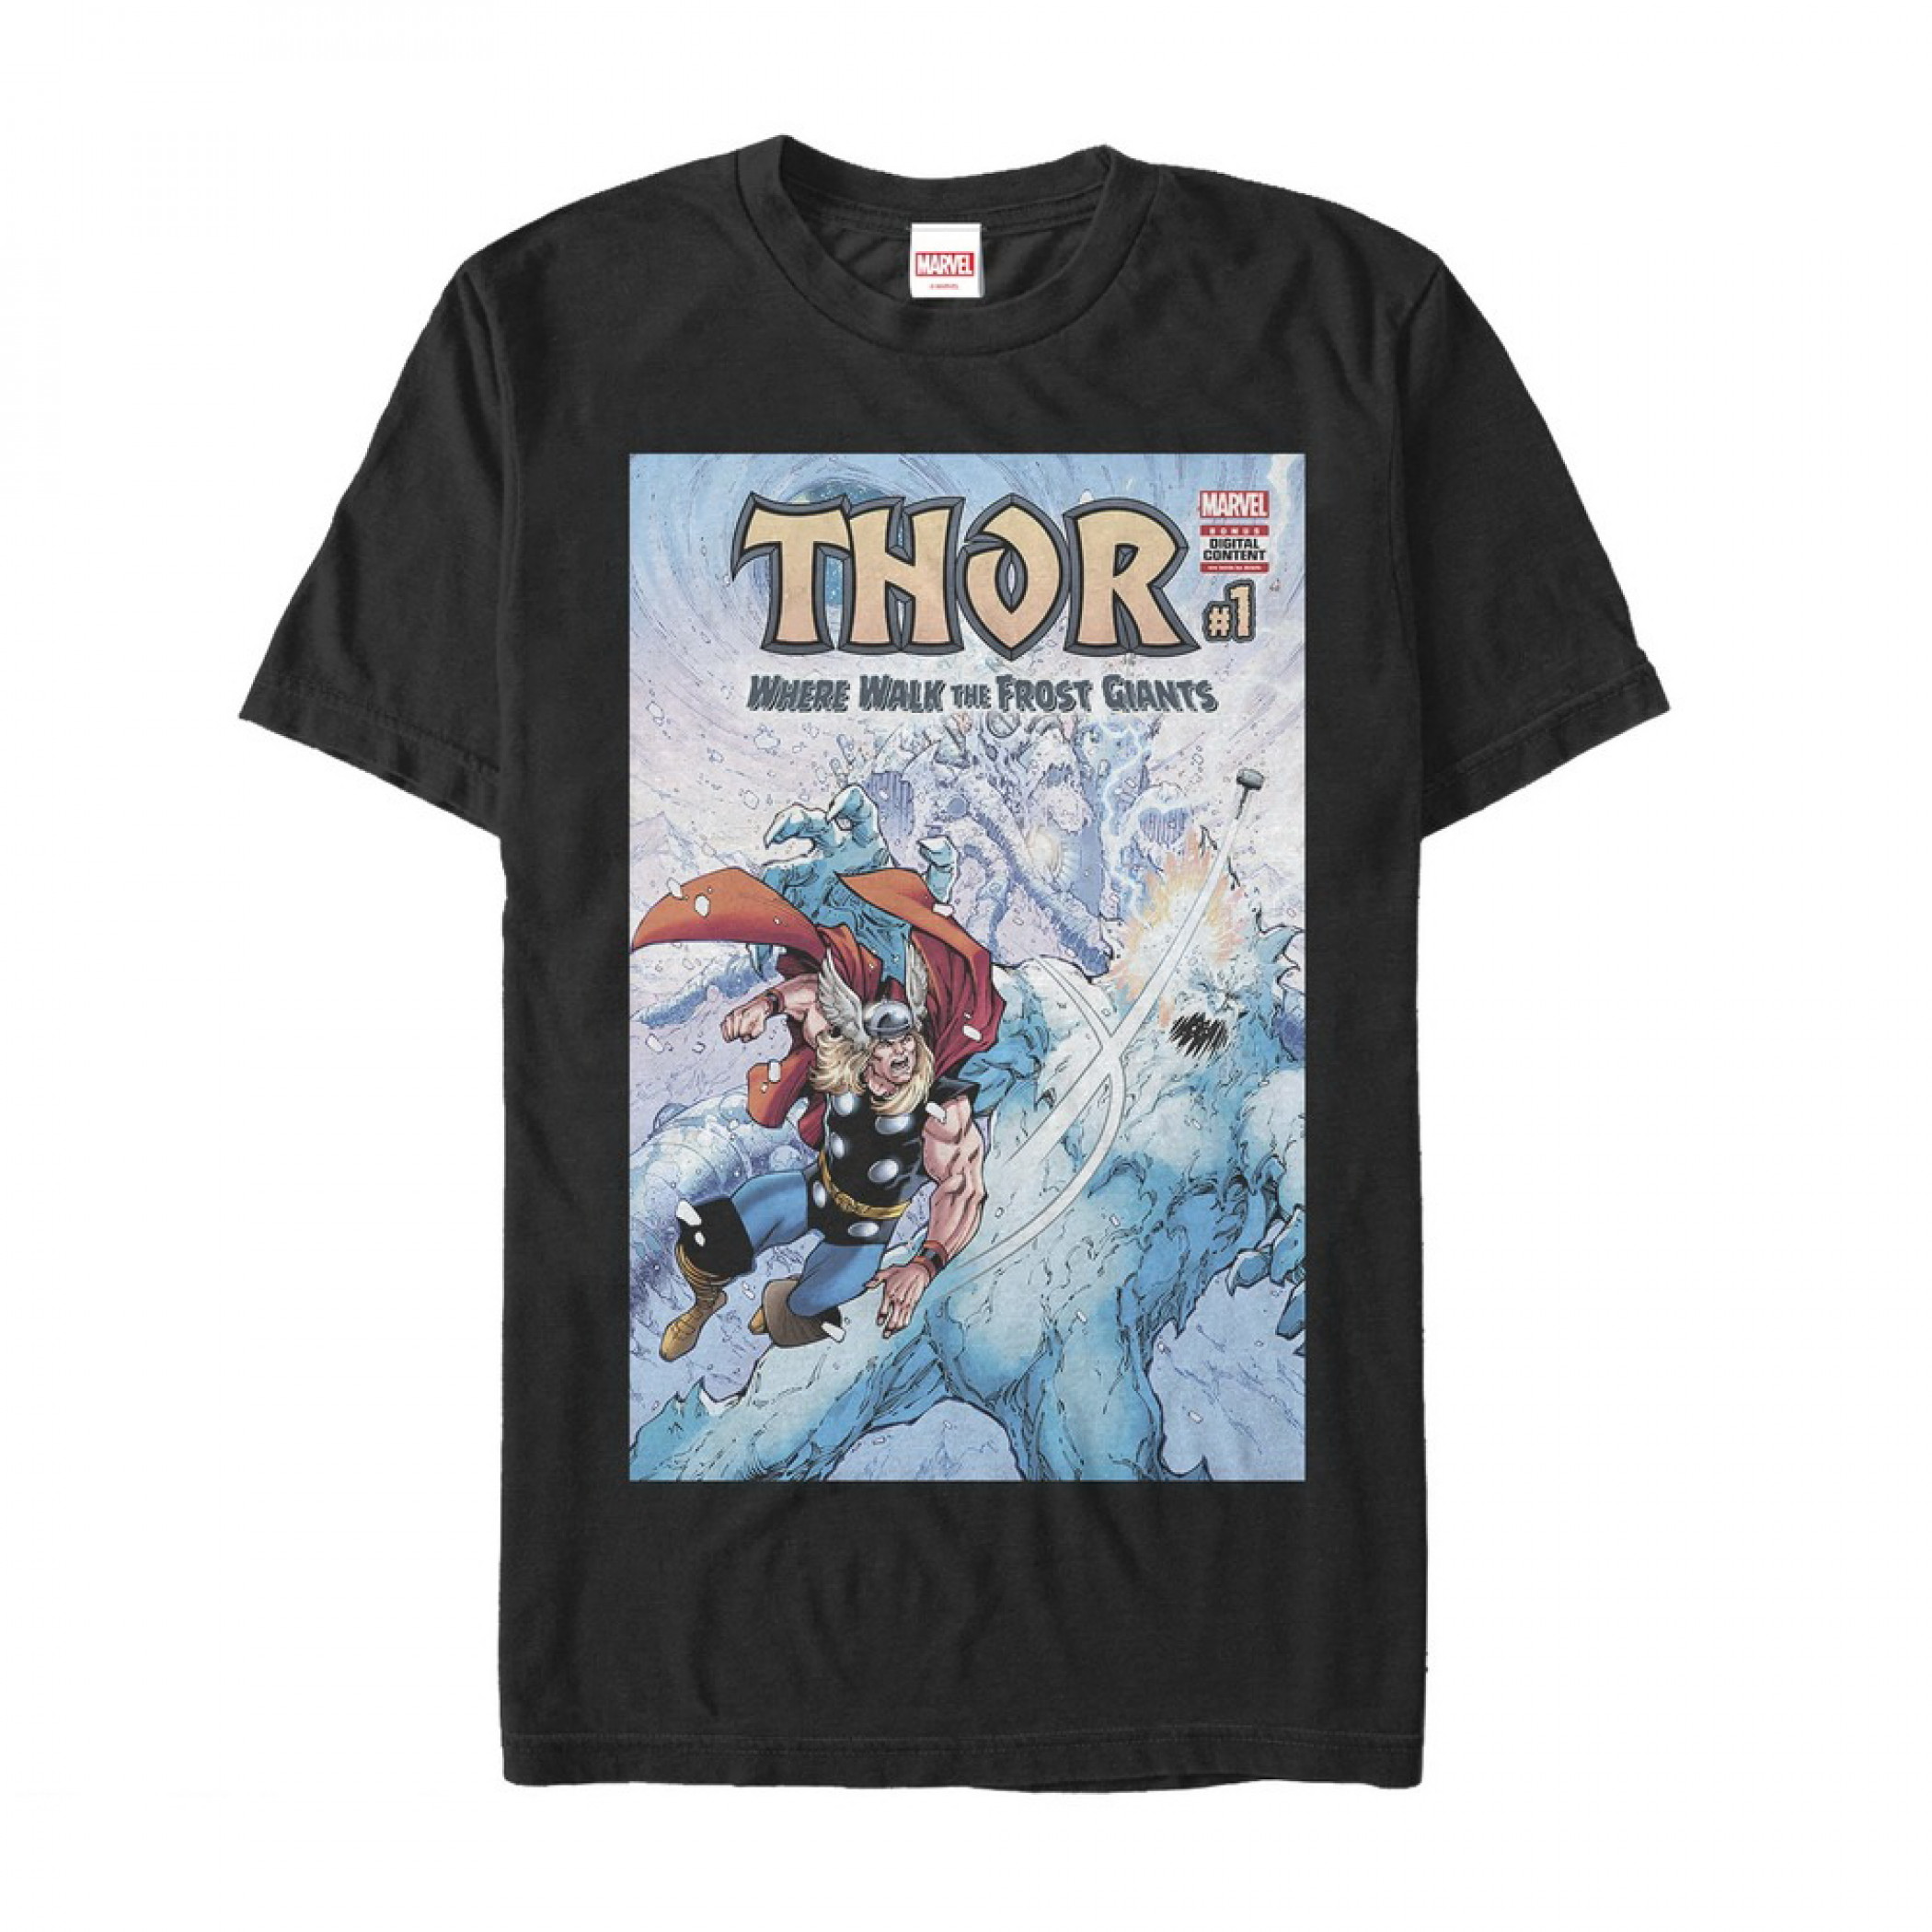 Thor Where Walk the Frost Giants #1 T-Shirt